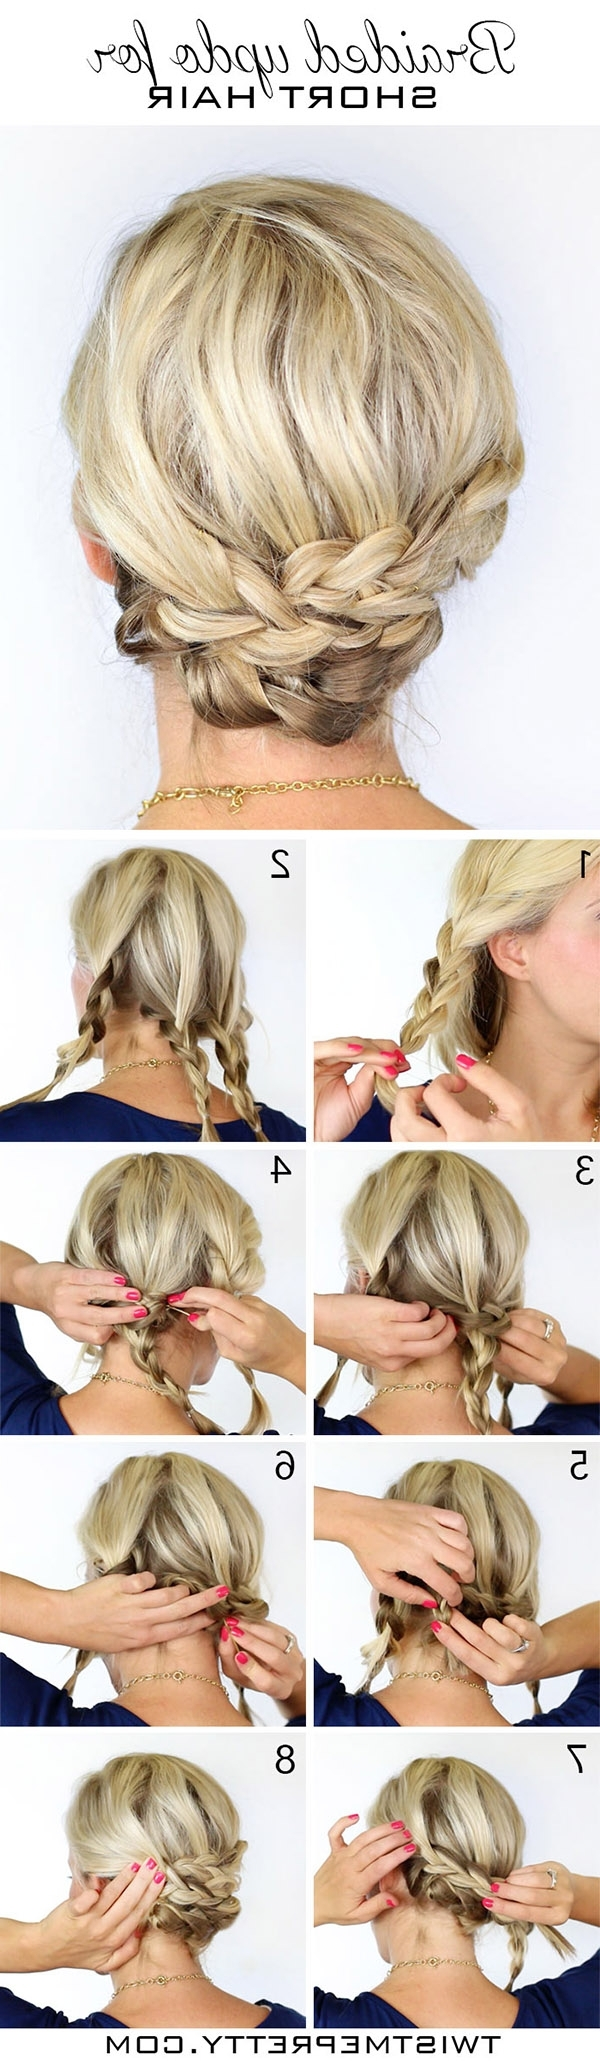 20 Diy Wedding Hairstyles With Tutorials To Try On Your Own Pertaining To Latest Easy Bridesmaid Hairstyles For Short Hair (View 1 of 15)